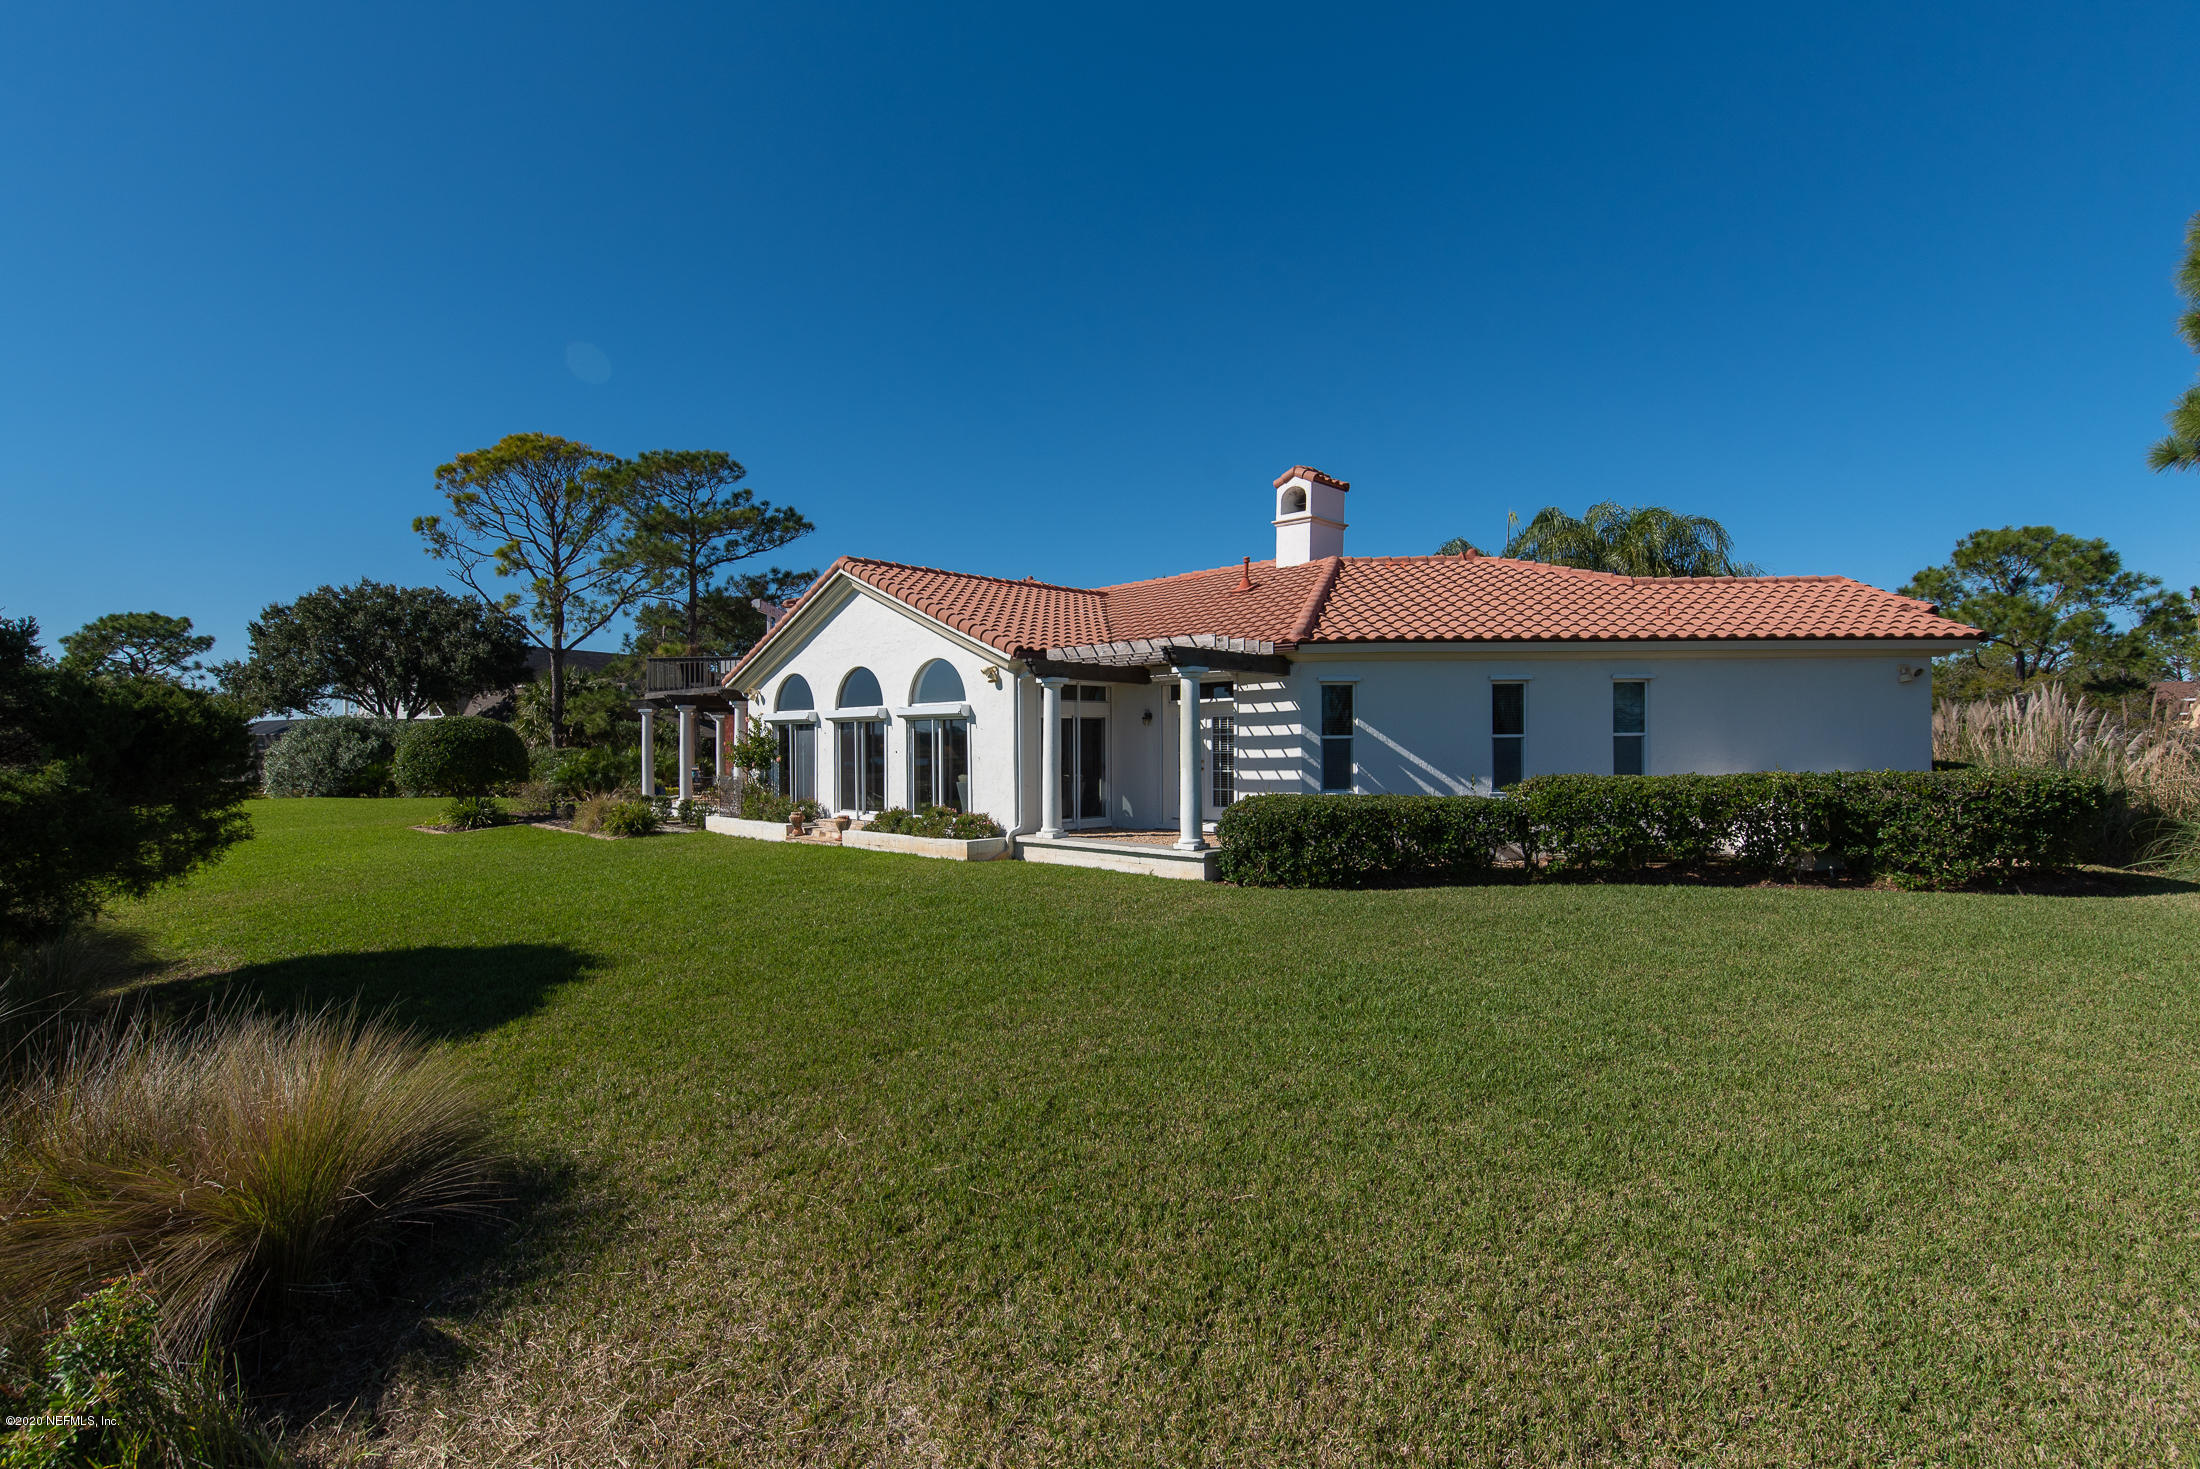 188 HERONS NEST, ST AUGUSTINE, FLORIDA 32080, 3 Bedrooms Bedrooms, ,3 BathroomsBathrooms,Residential,For sale,HERONS NEST,1038774